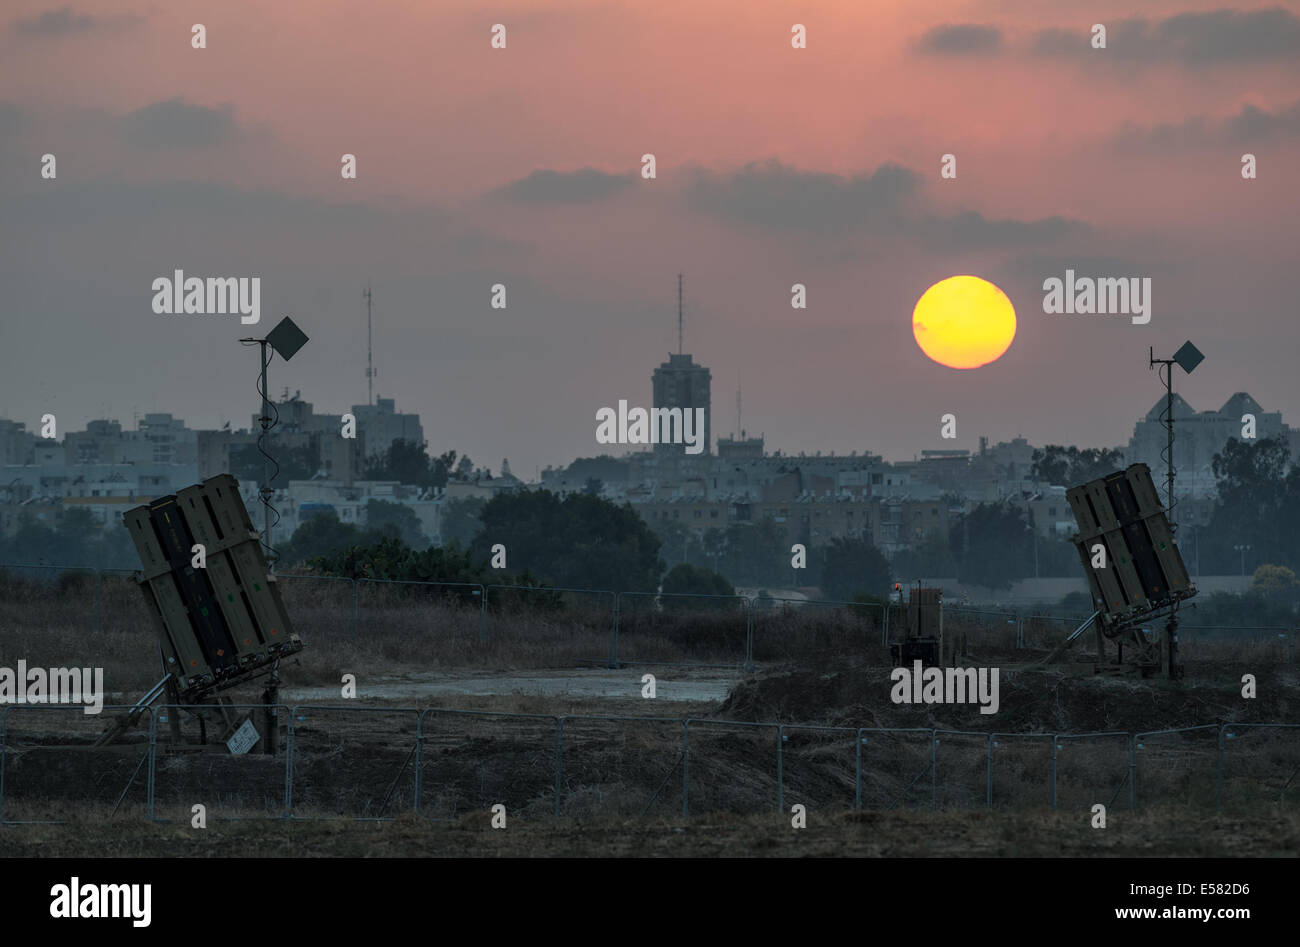 Gaza Border. 22nd July, 2014. Iron Dome anti-missile shield systems are deployed near Ashdod, a southern Israeli - Stock Image